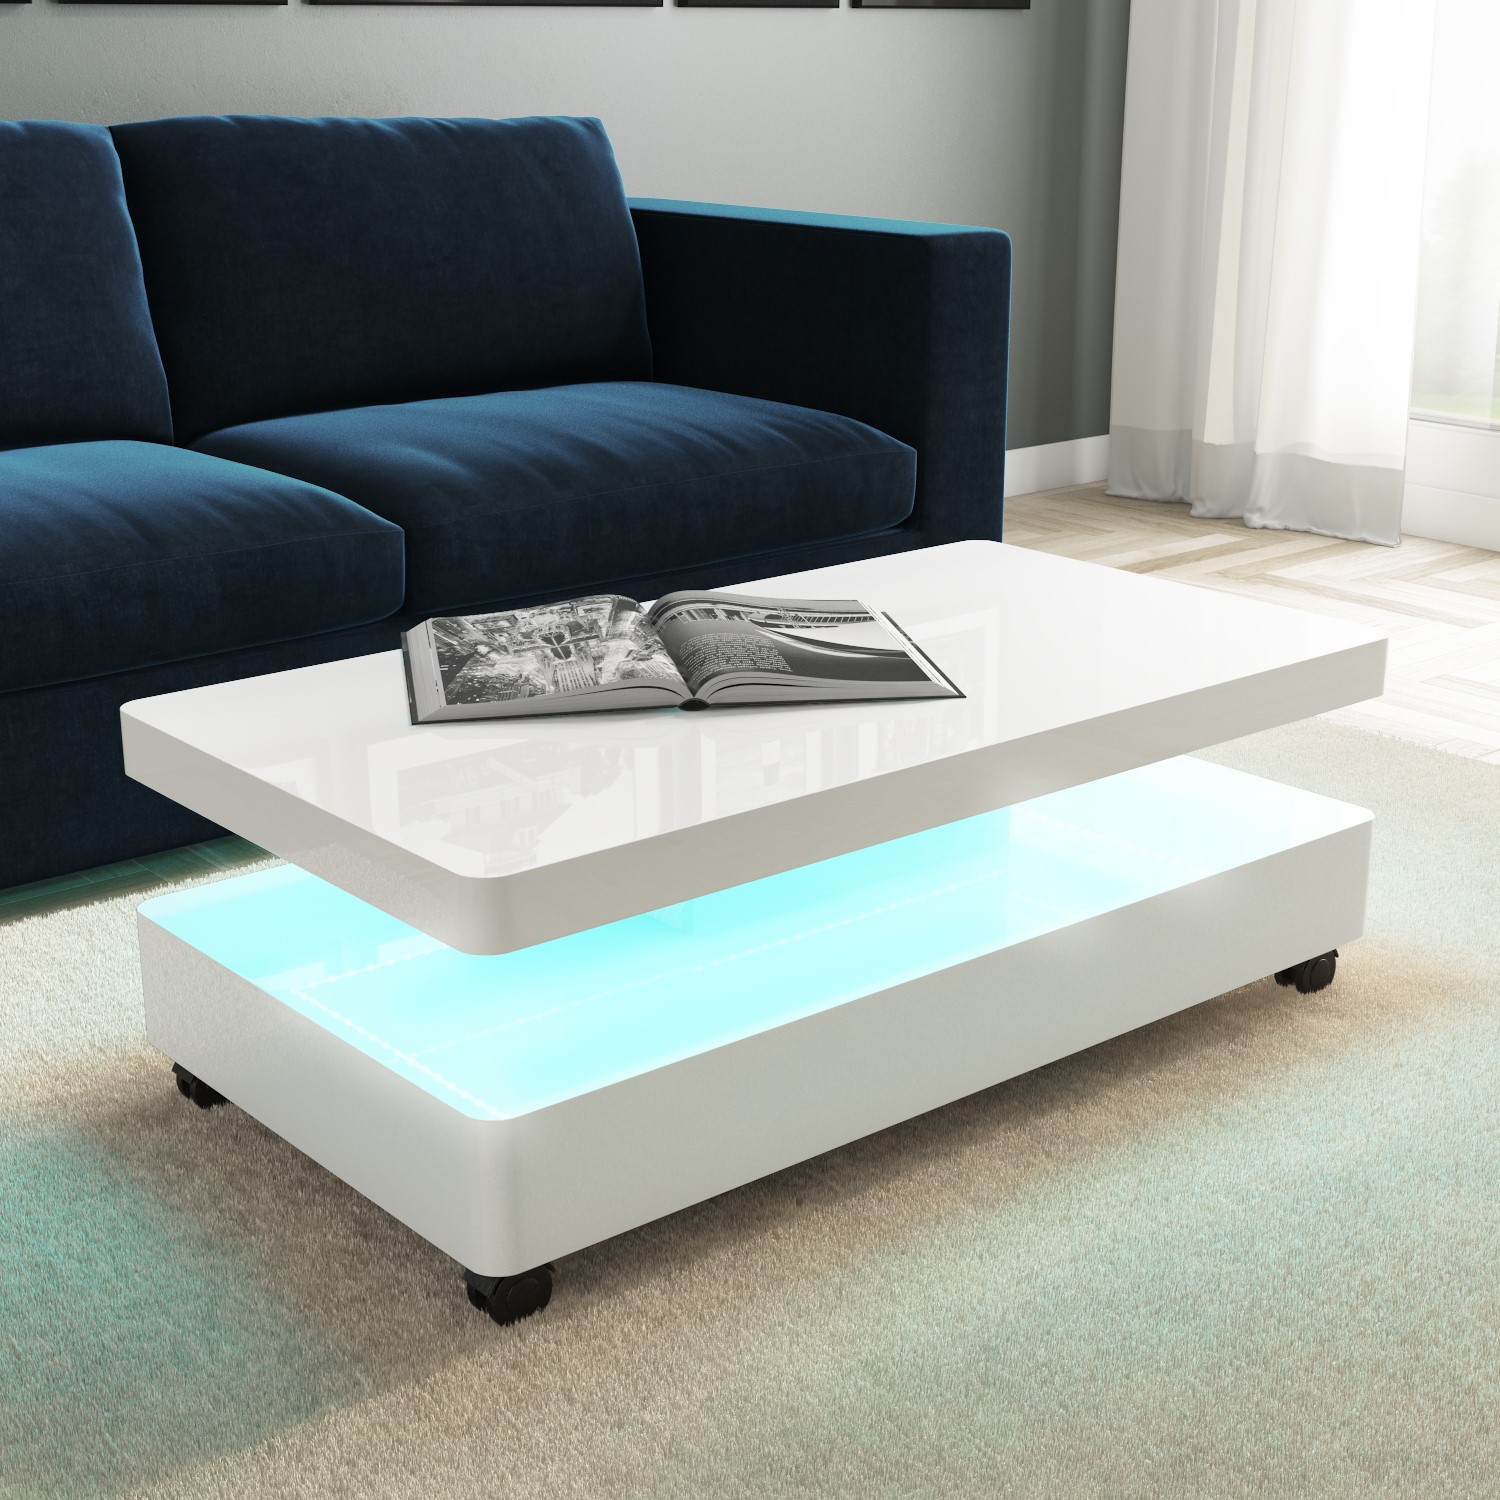 details about high gloss white coffee table with led lighting